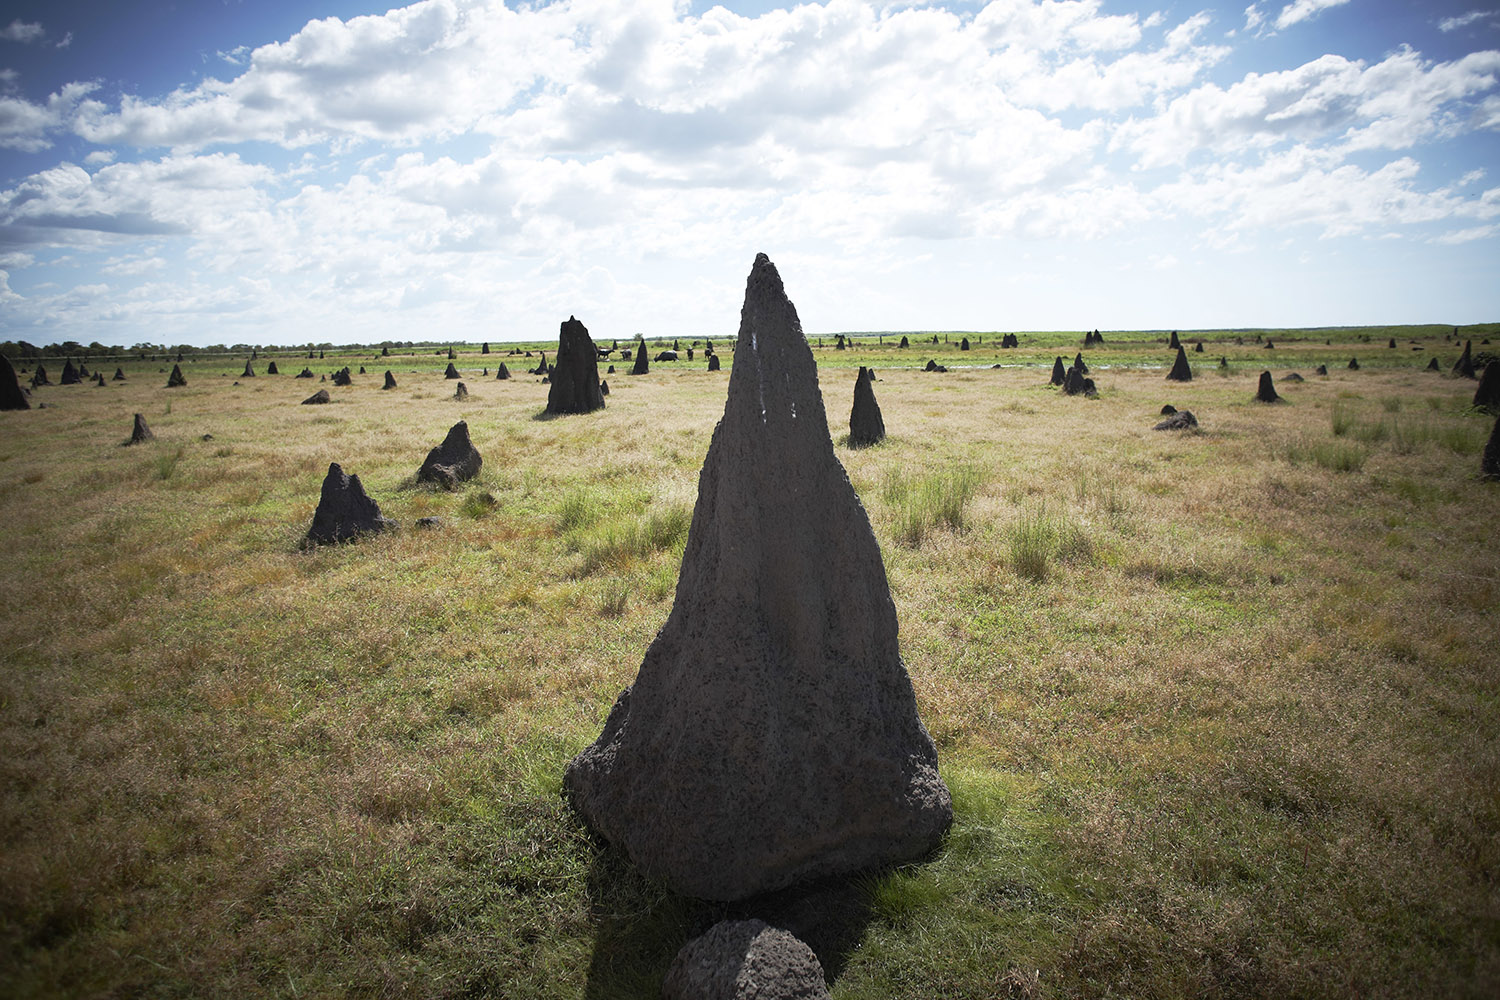 Magnetic Termite Mounds - Tourism Australia